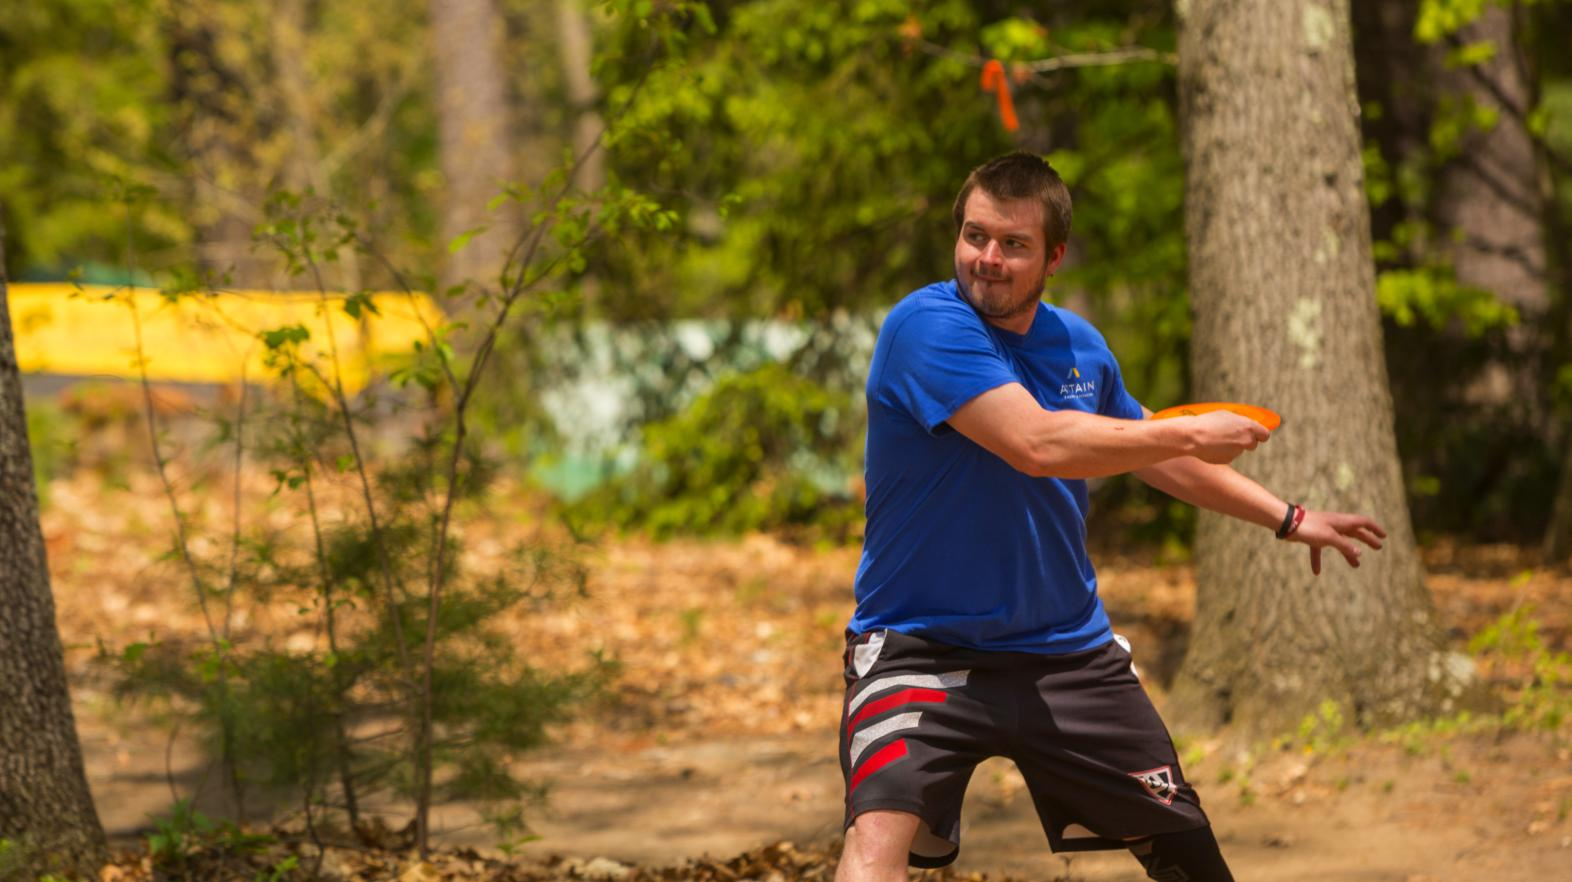 Springfield College student playing disc golf at East Campus